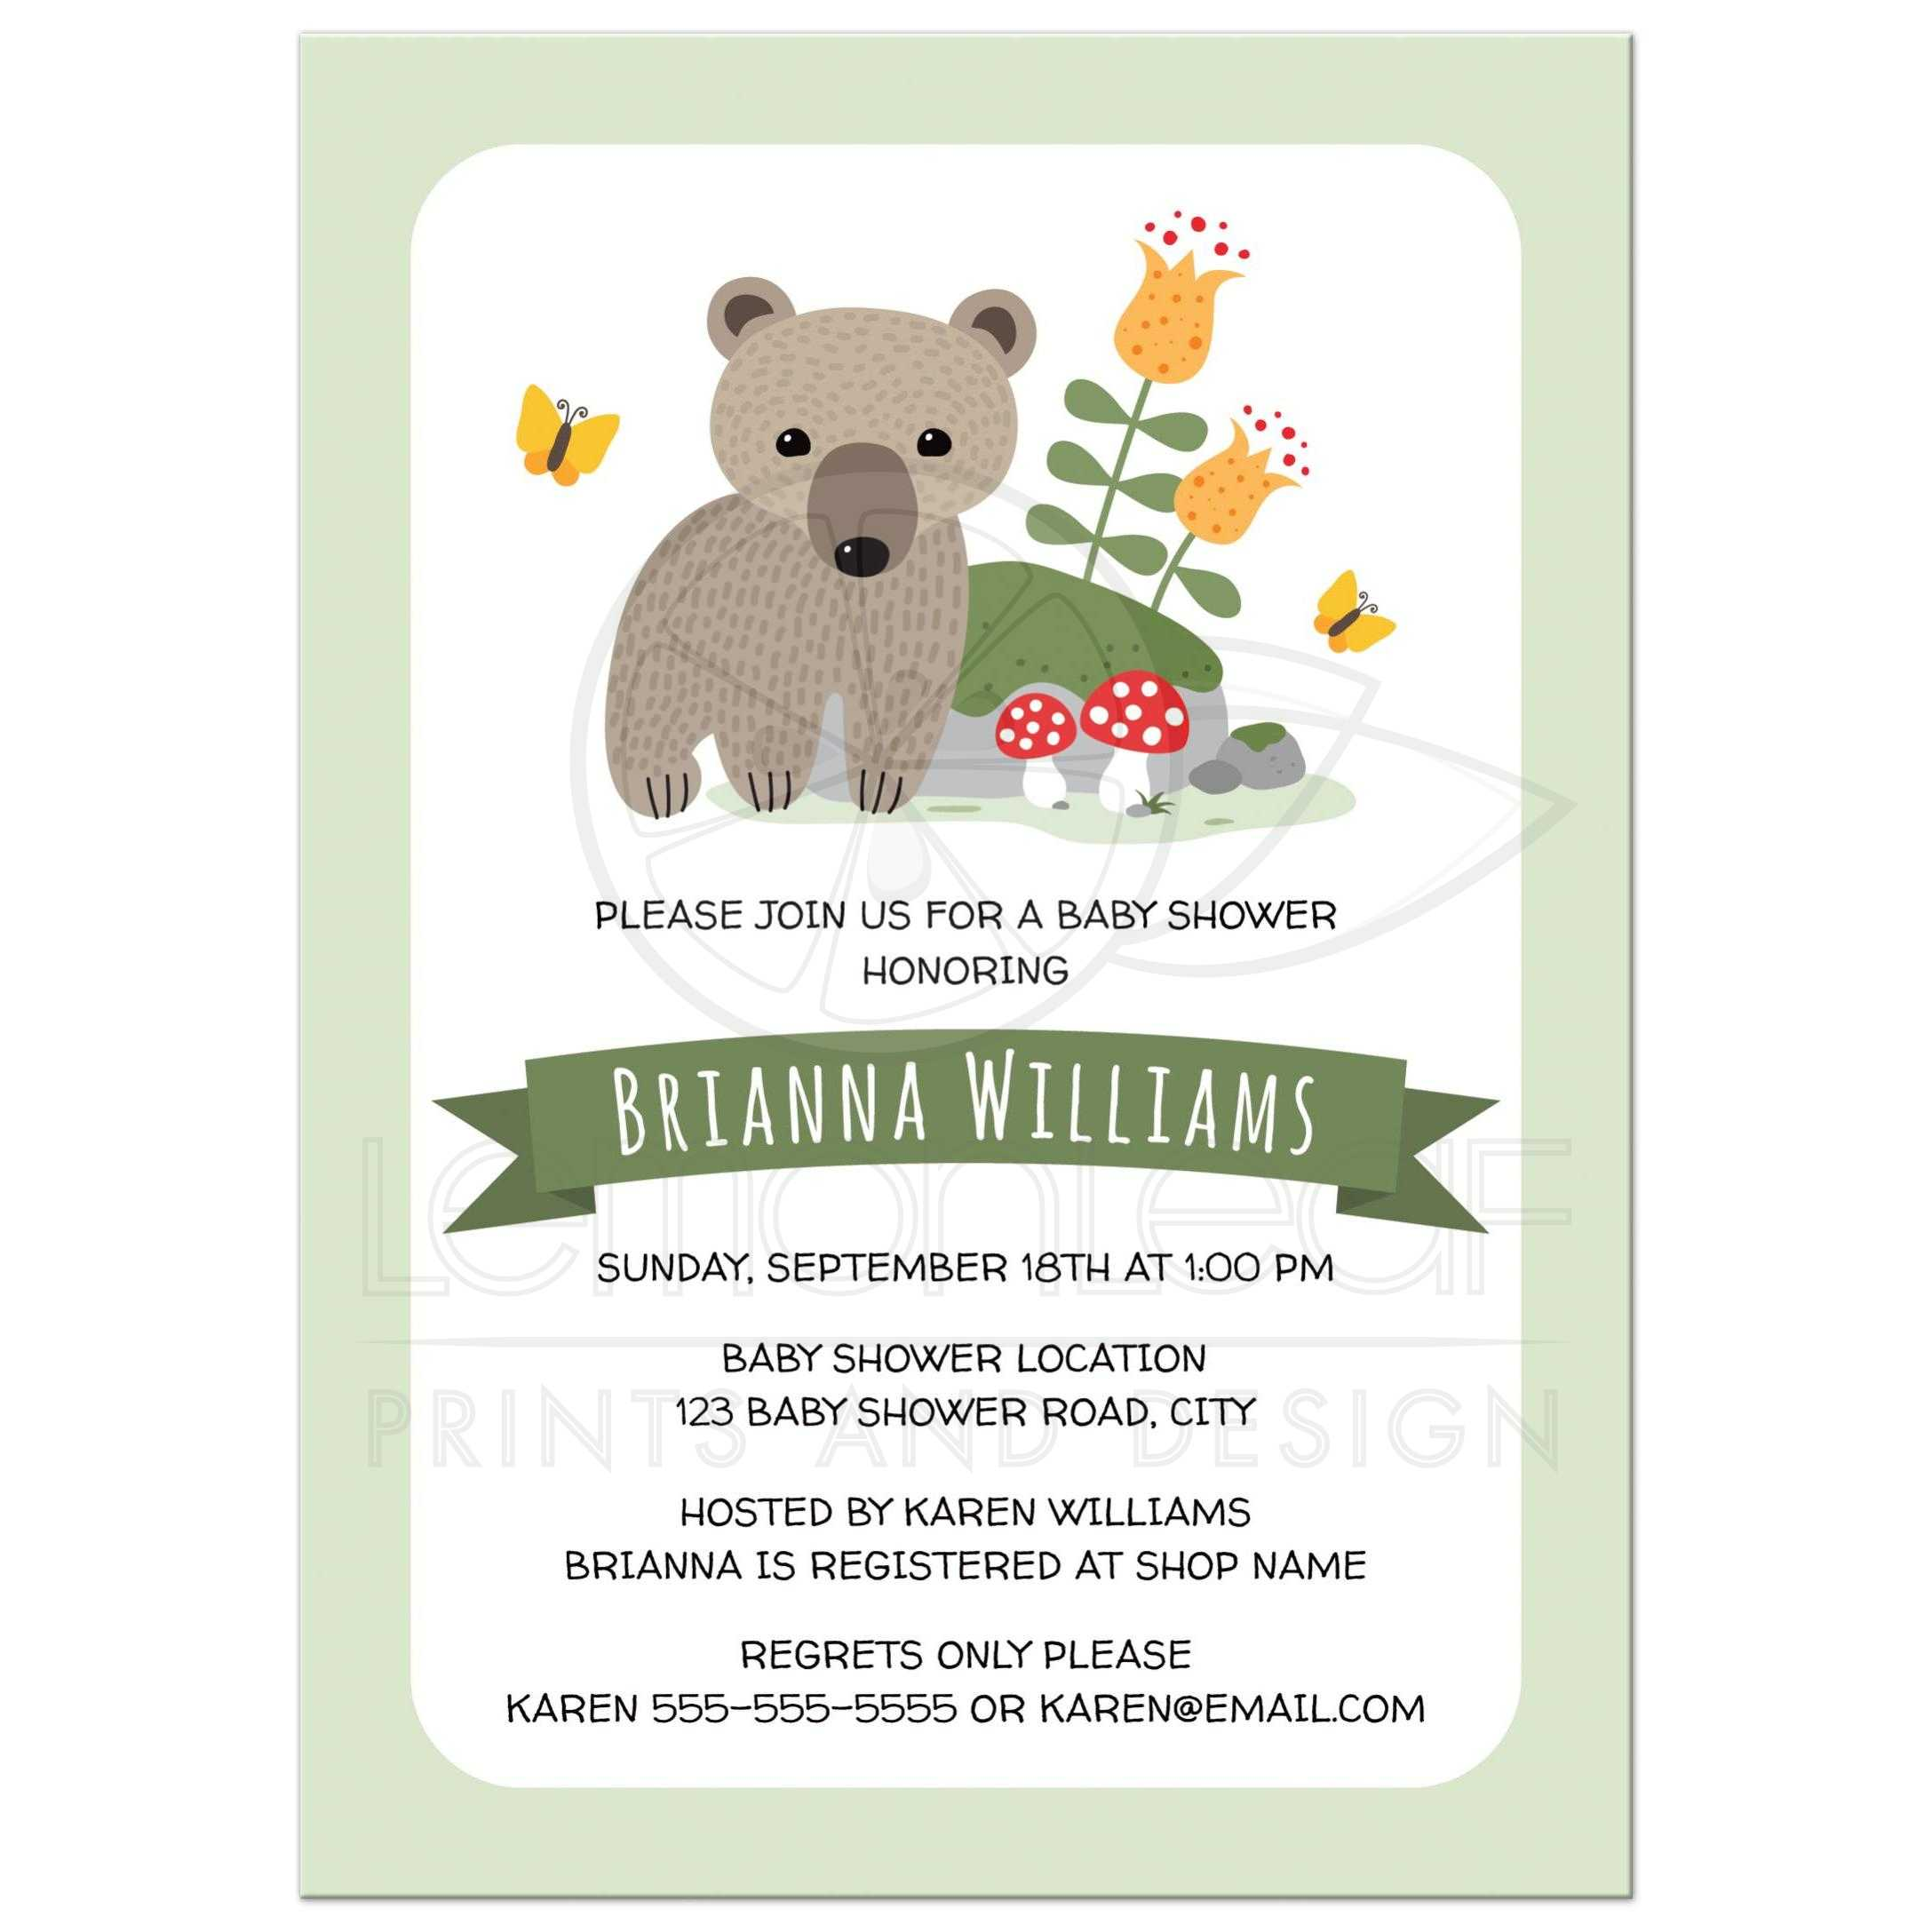 Woodland baby shower invitations with bear cub toadstools flowers woodland baby shower invitations with bear cub toadstools flowers and butterflies filmwisefo Images